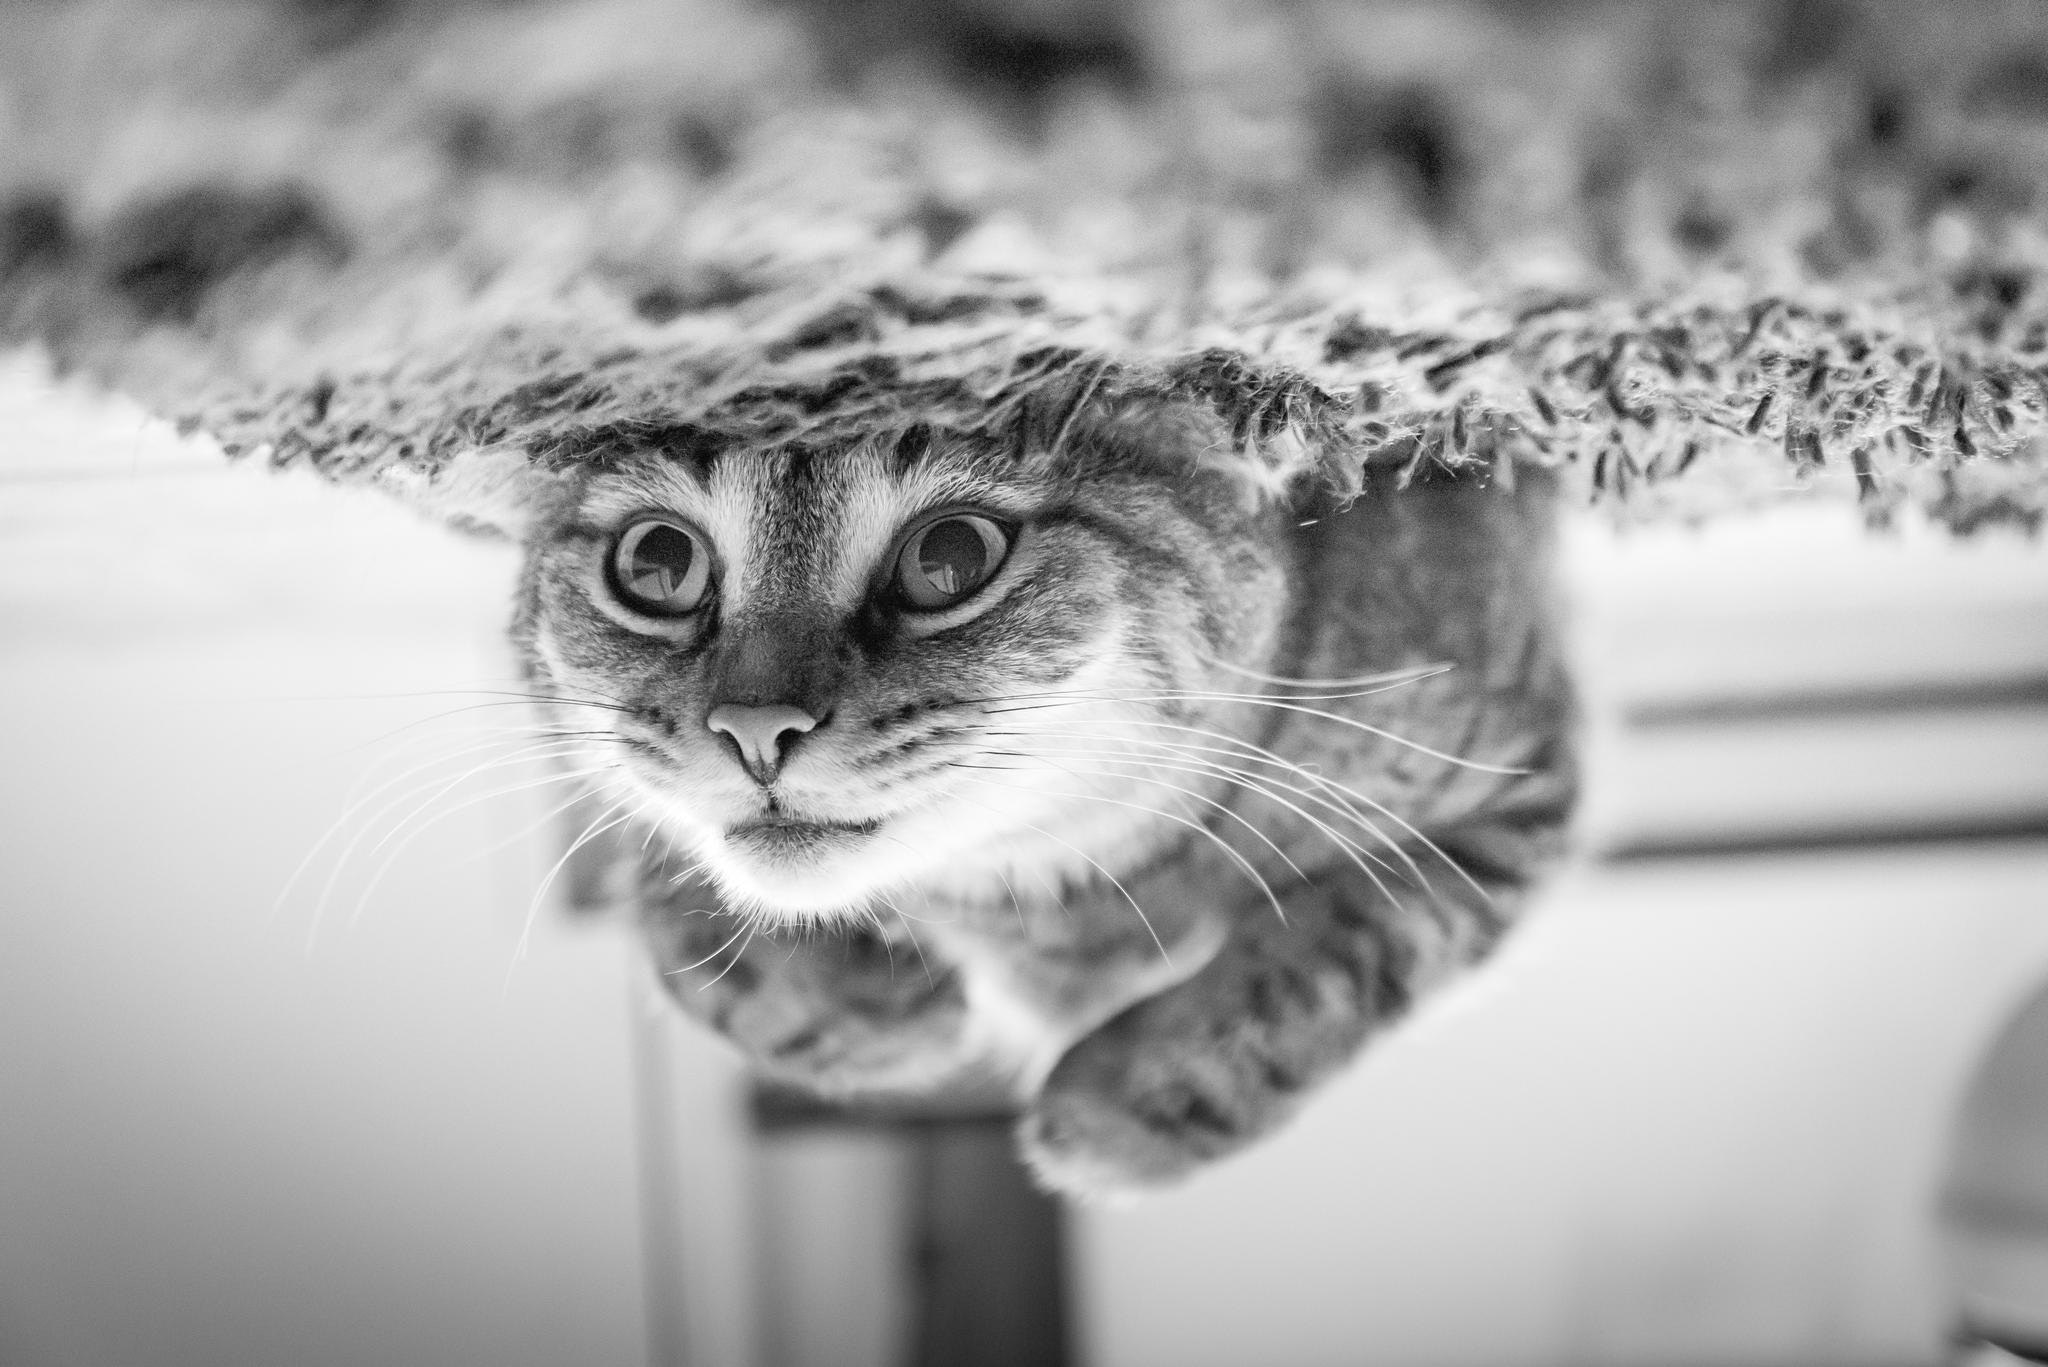 Close-up of Cat, Adorable, Head, Whiskers, Upside down, HQ Photo